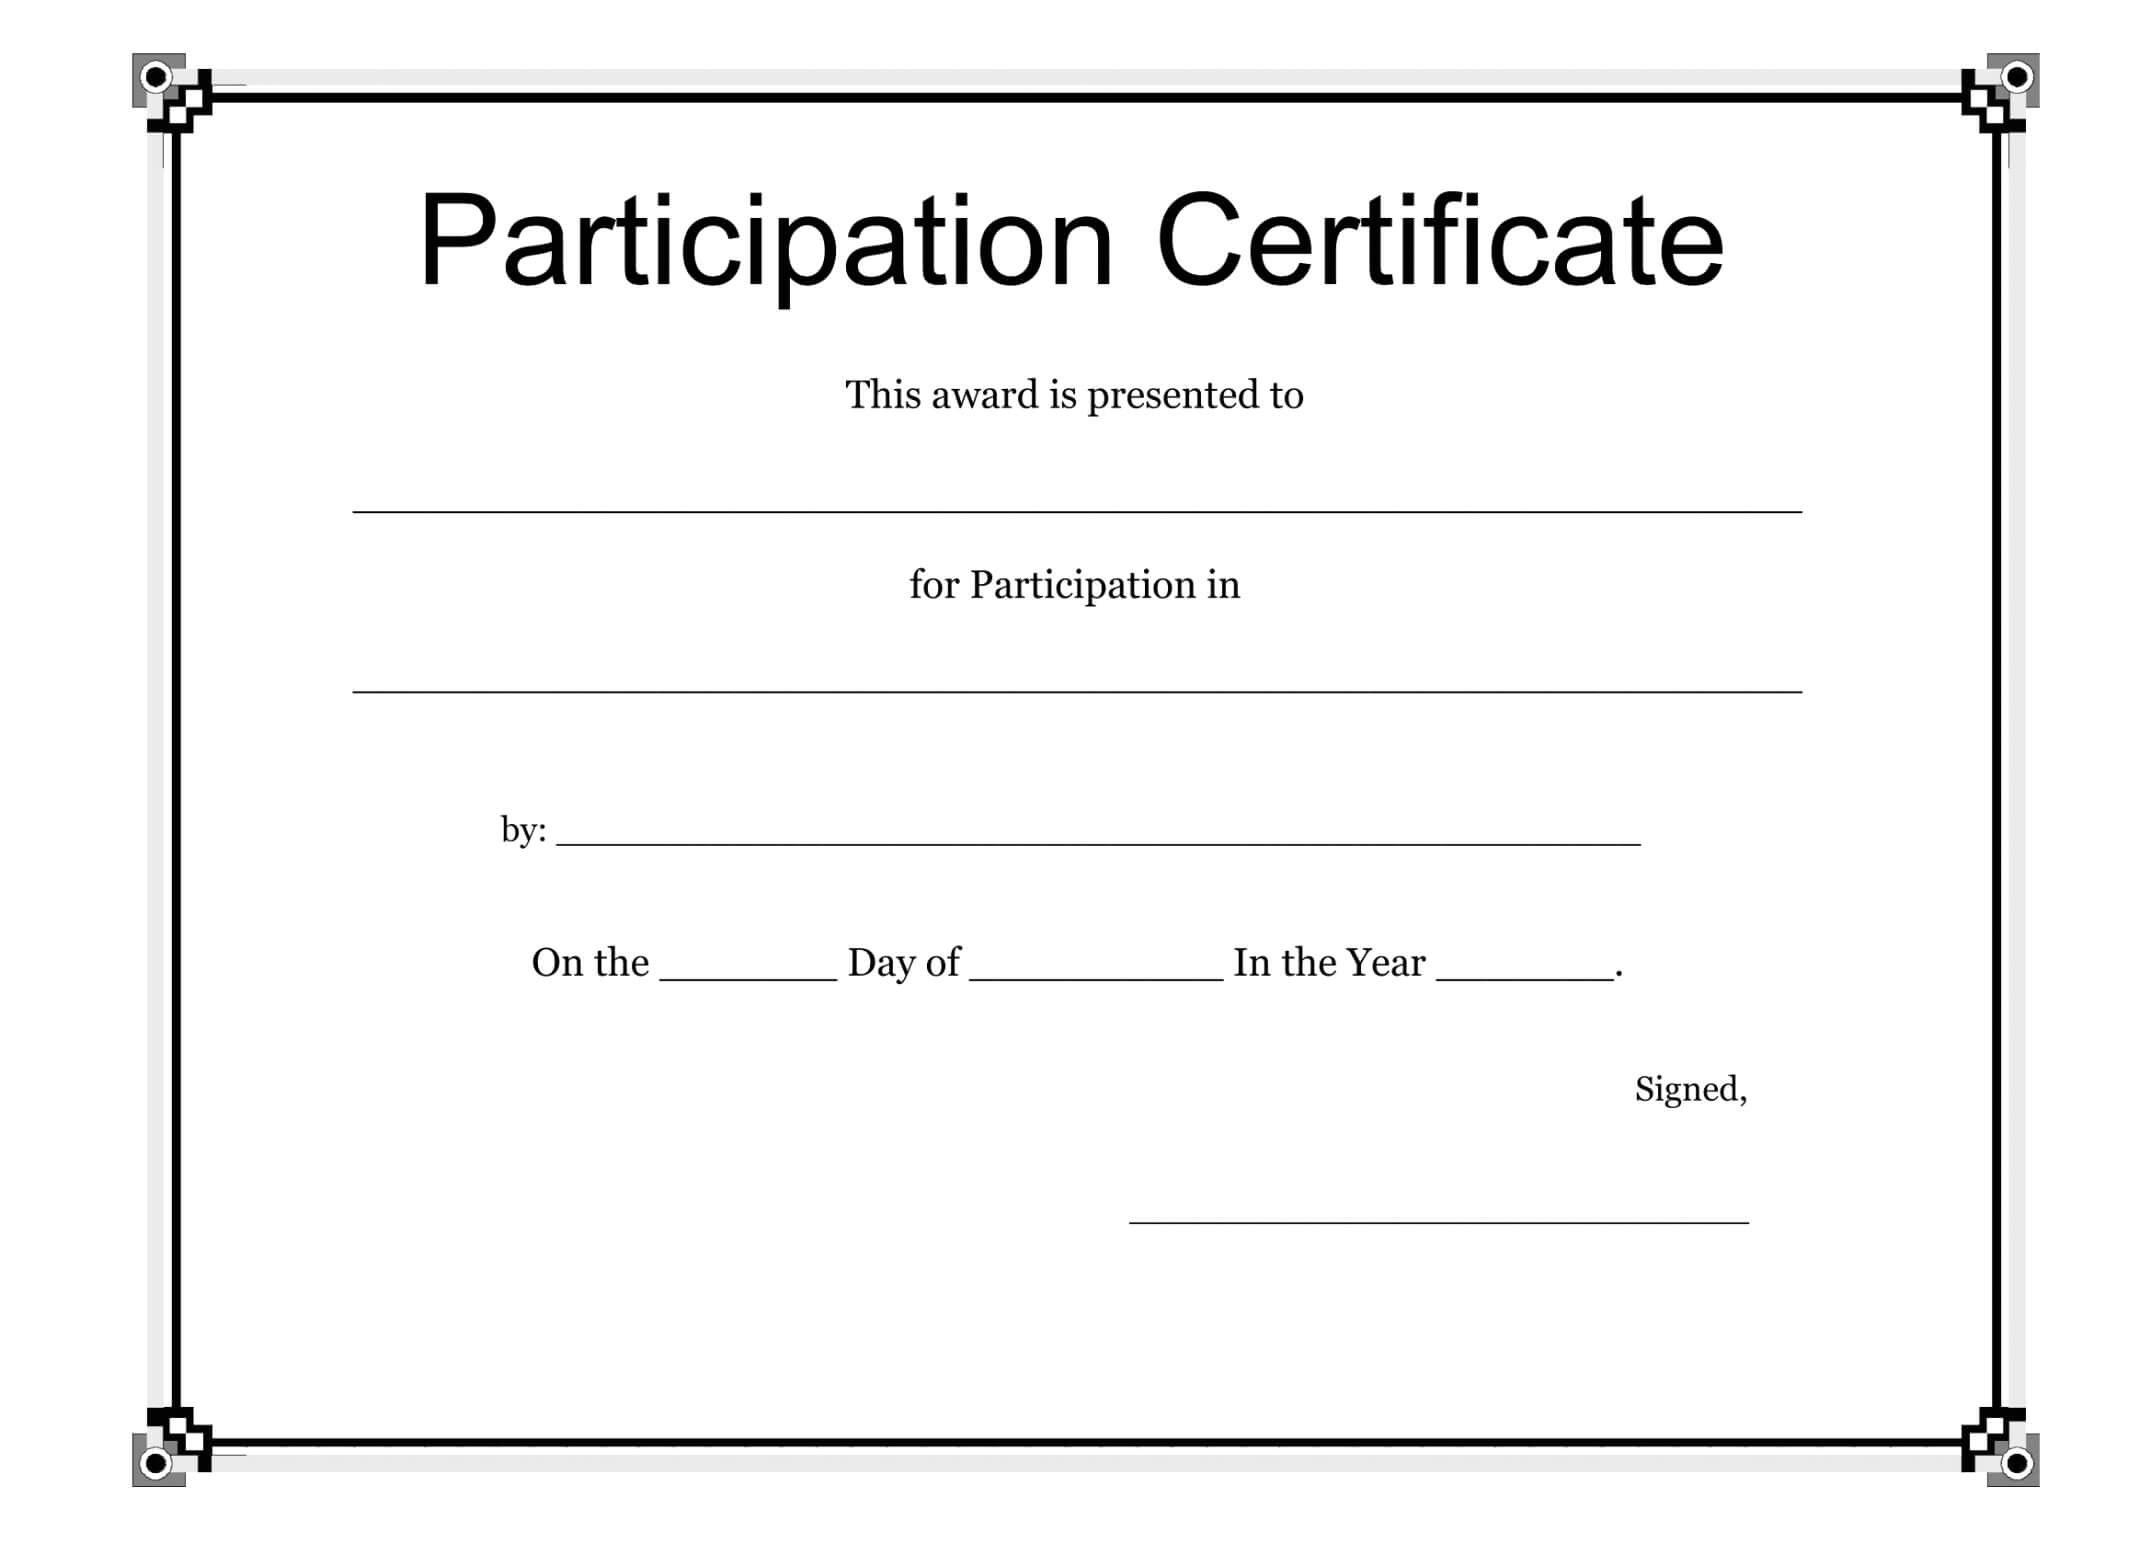 Participation Certificate Template Free Download (Free With Regard To Participation Certificate Templates Free Download